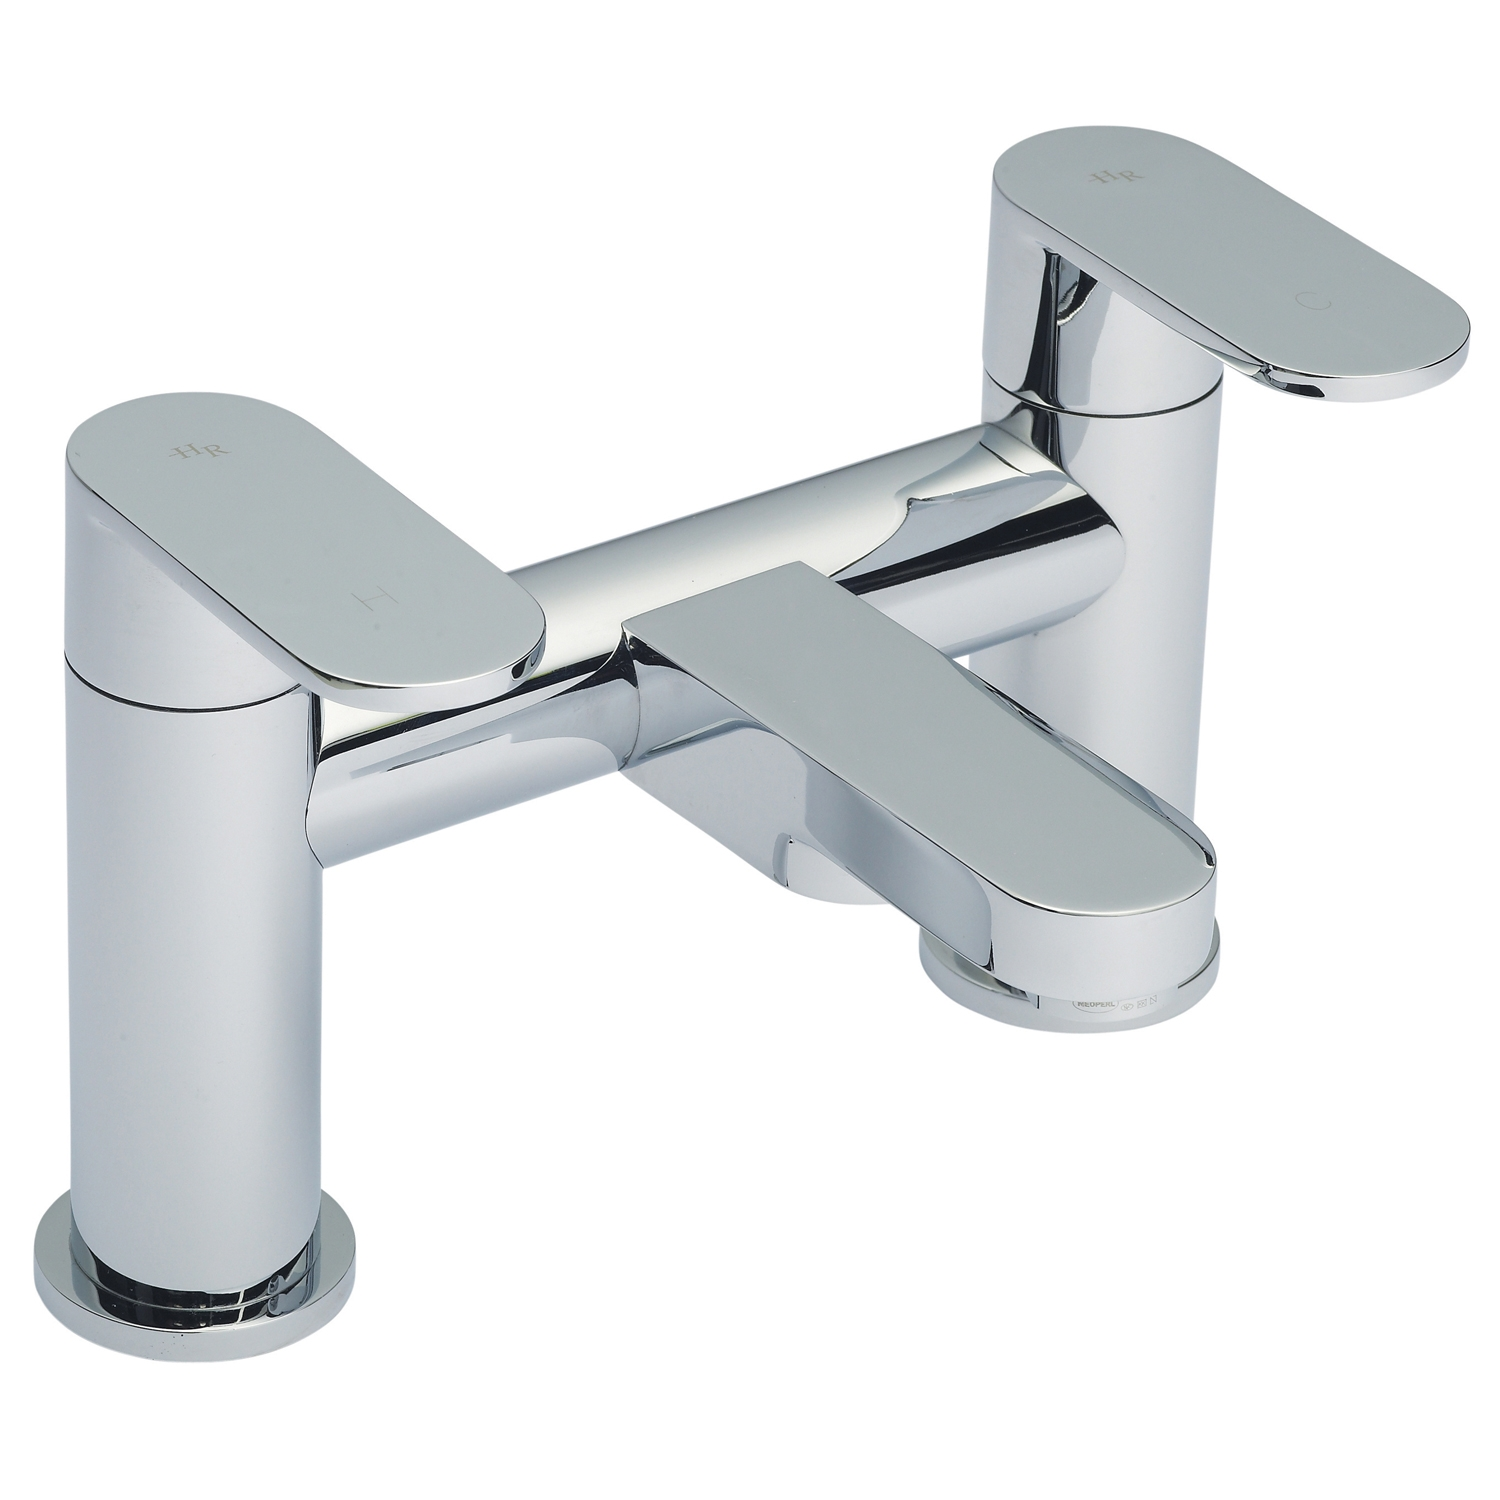 Hudson Reed Cloud 9 Mono Basin Mixer Tap and Bath Filler Tap, Chrome